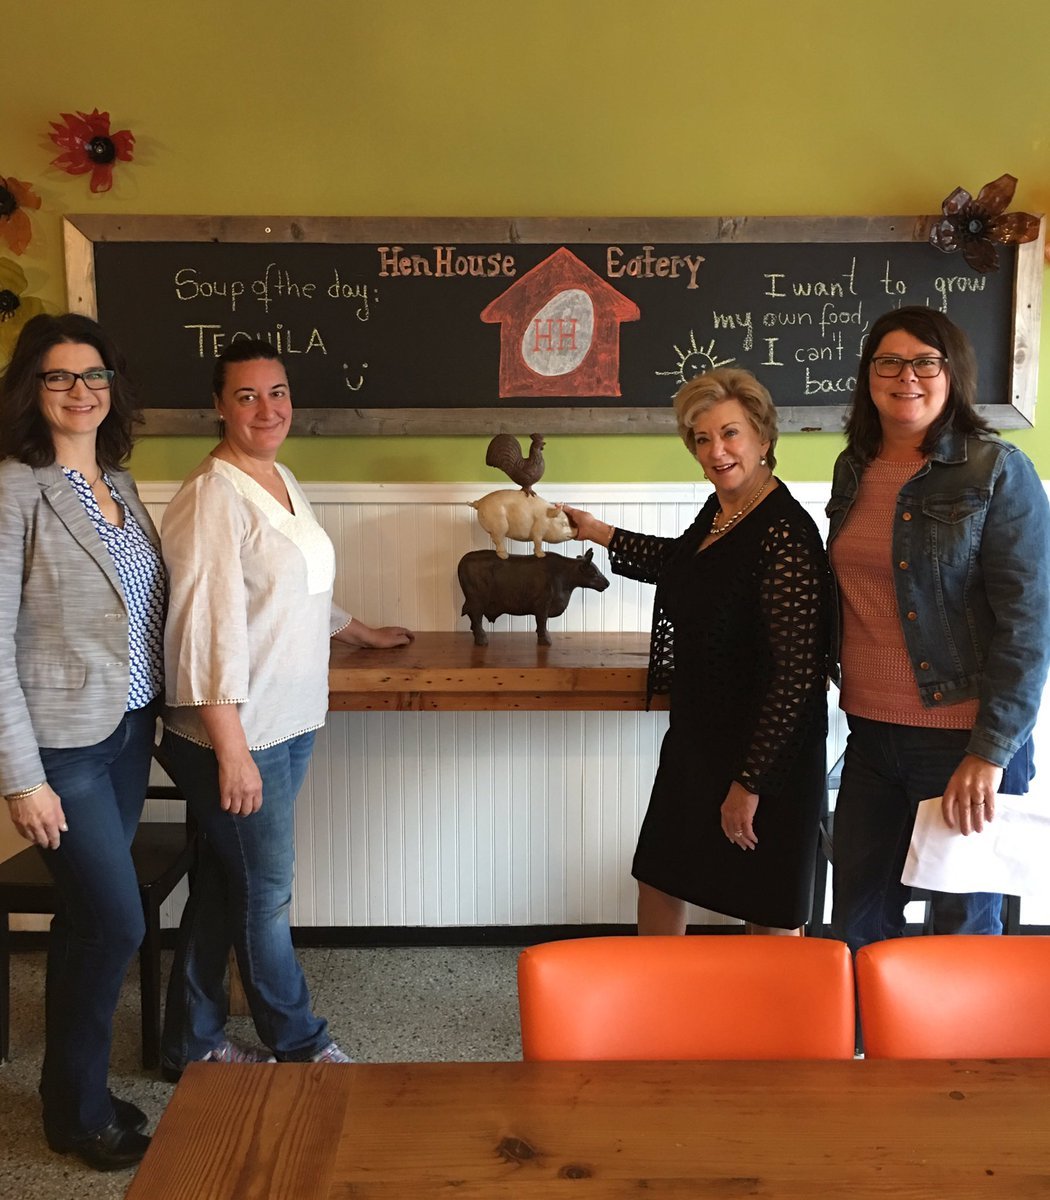 Today&#39;s #SBAIgniteTour starts with a visit to @HenHouseEatery in downtown Minneapolis! #WomanOwned #SmallBusiness #SBA<br>http://pic.twitter.com/mRnLSgt1pb